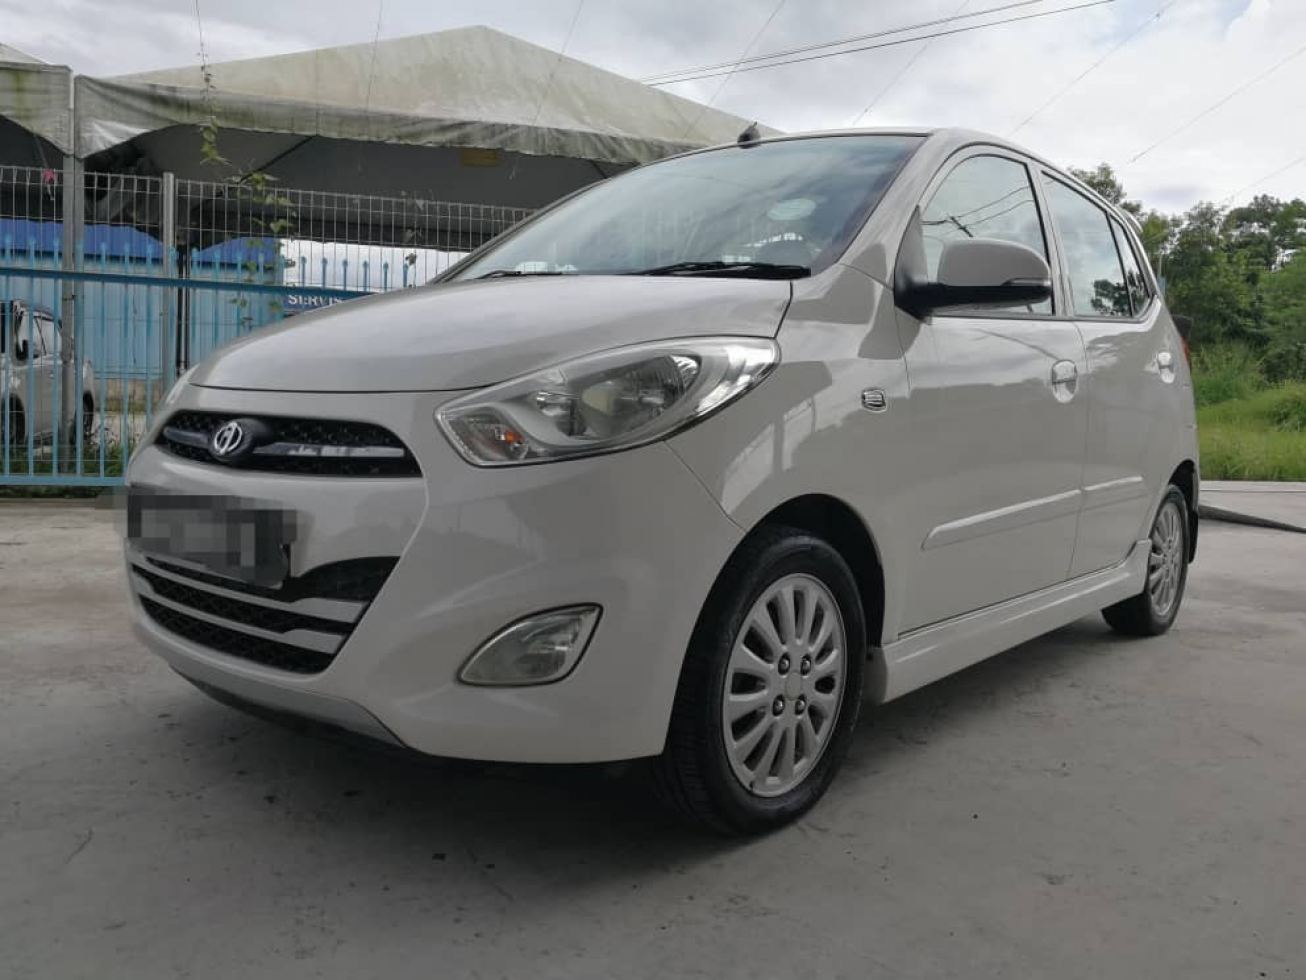 2014 Inokom I10 1.2 KAPPA HIGH SPEC FACELIFT (A)